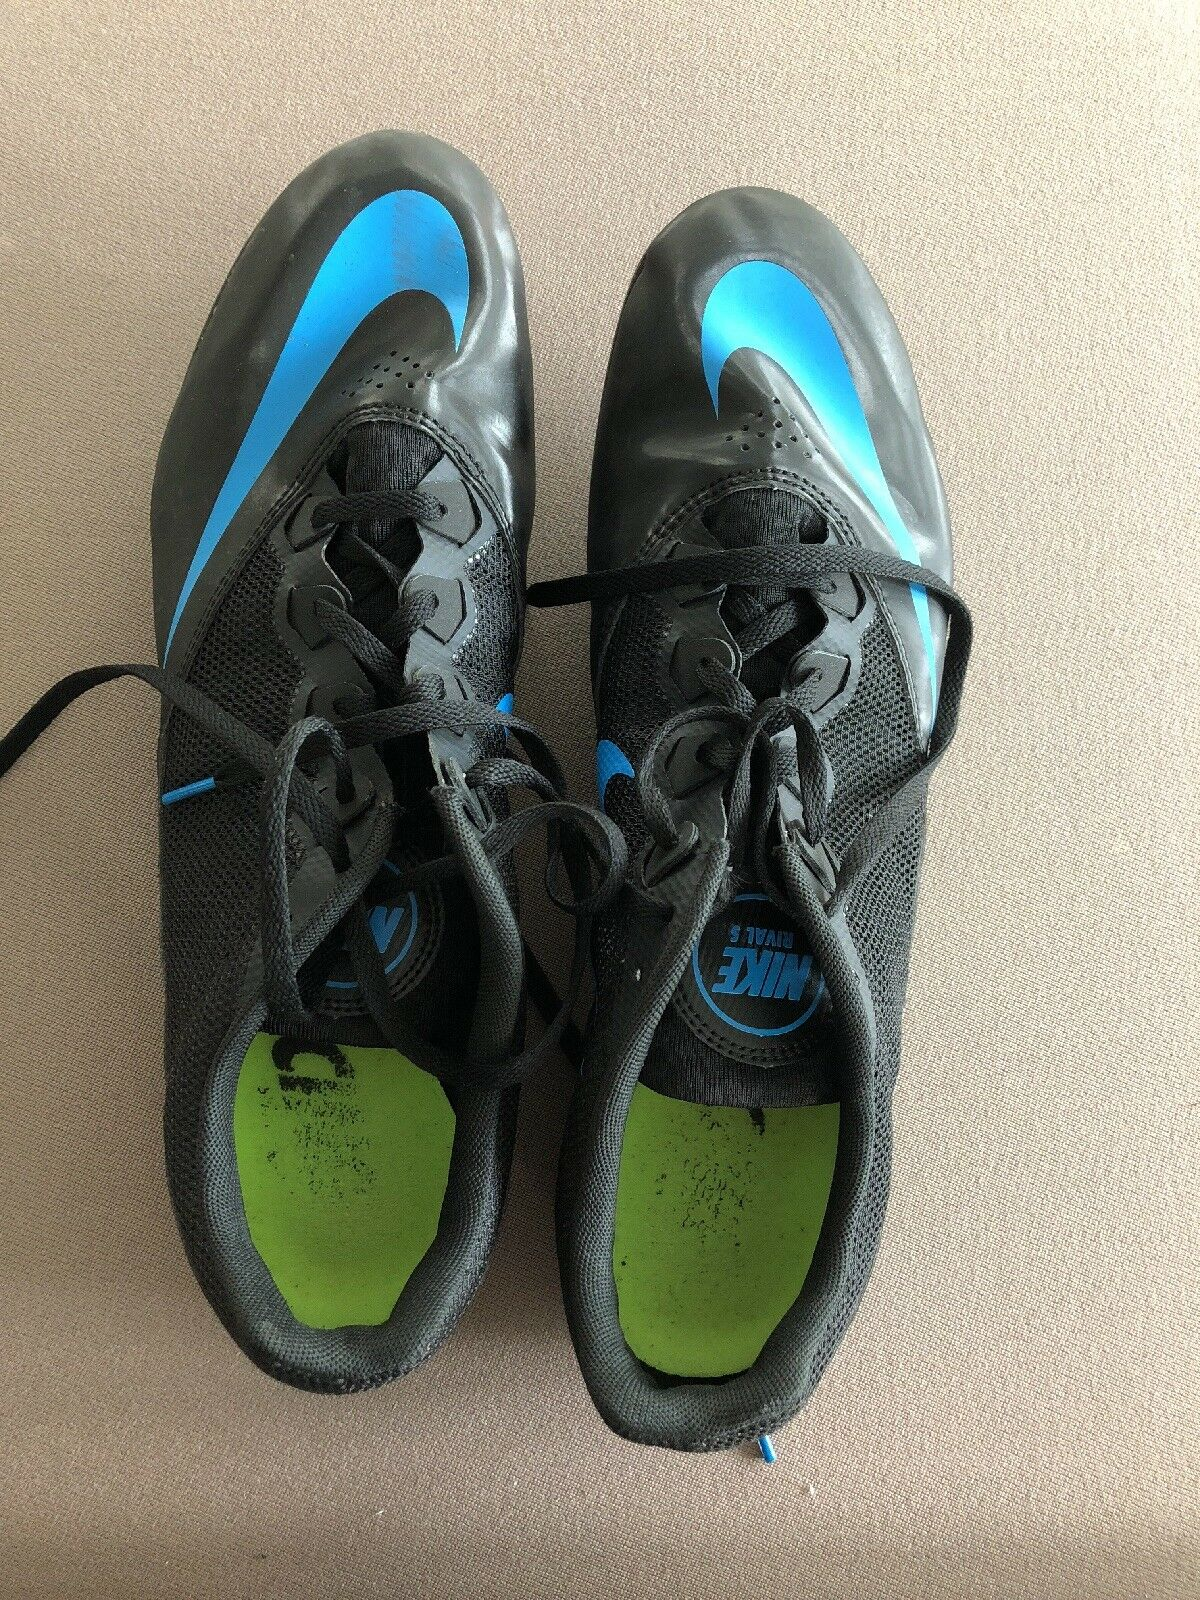 Nike Racing Shoes - Used Mens 14 Brand discount